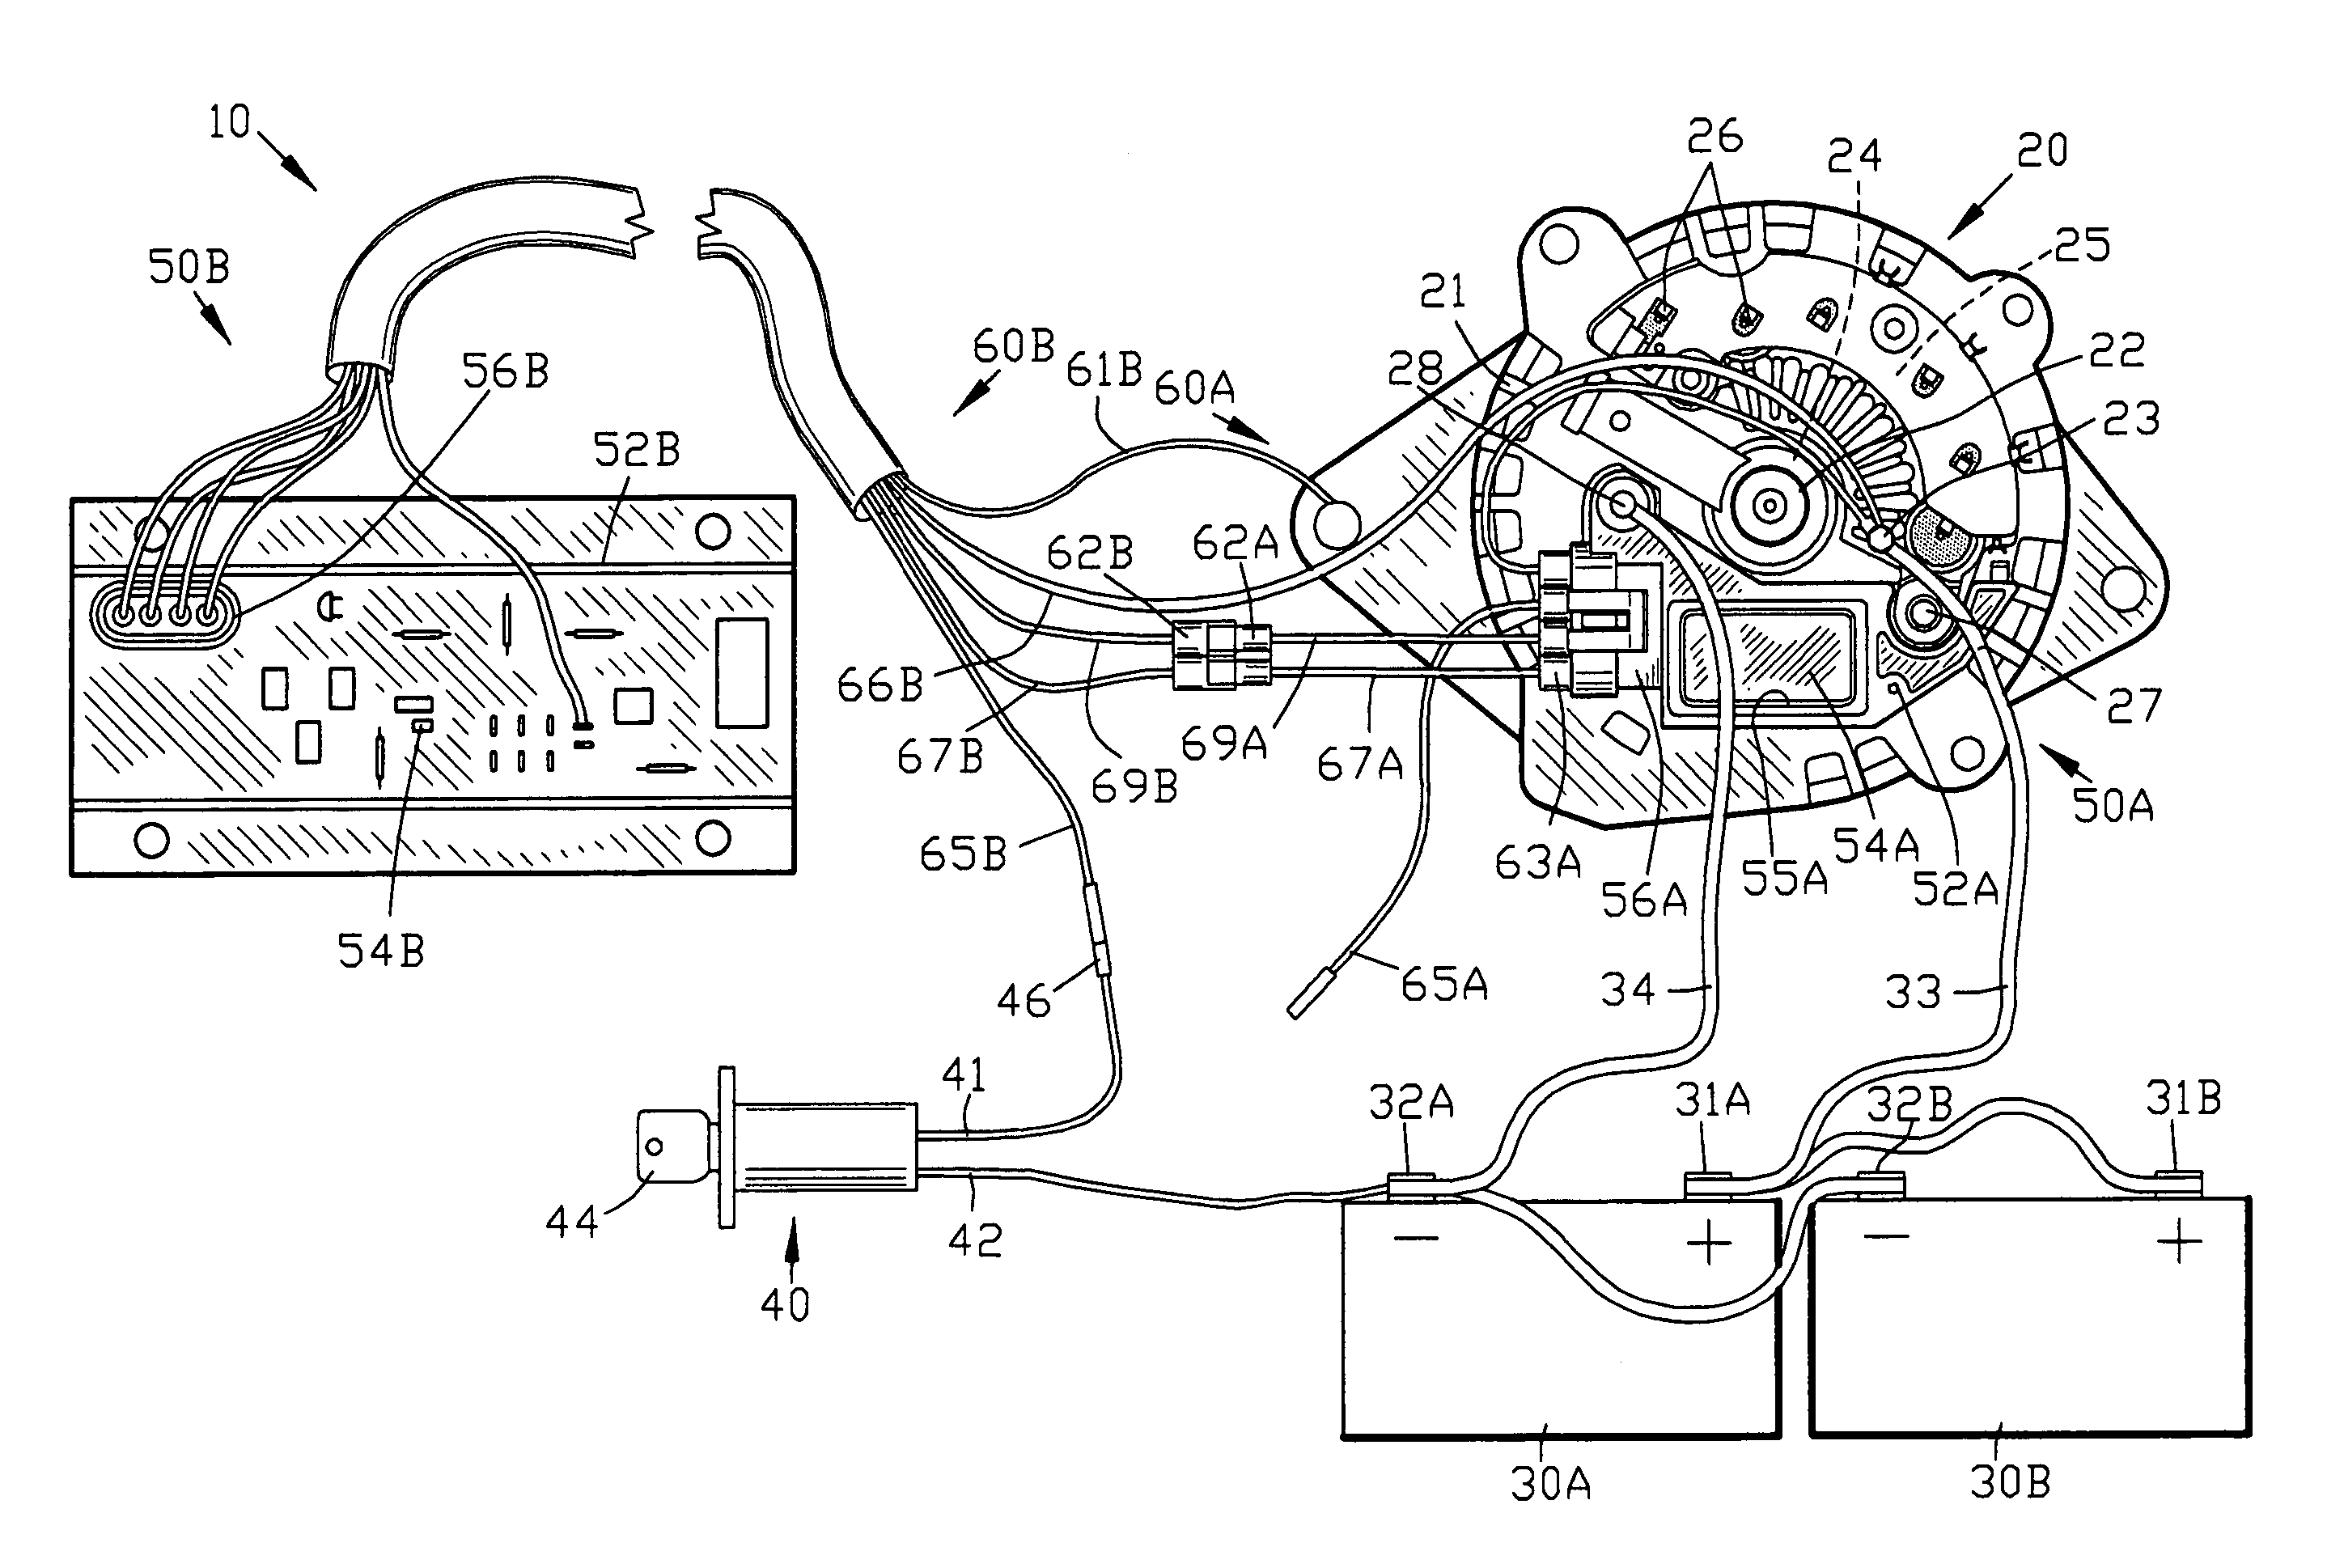 US07245111 20070717 D00000 patent us7245111 regulator system for alternator google patents valeo alternator regulator wiring diagram at eliteediting.co